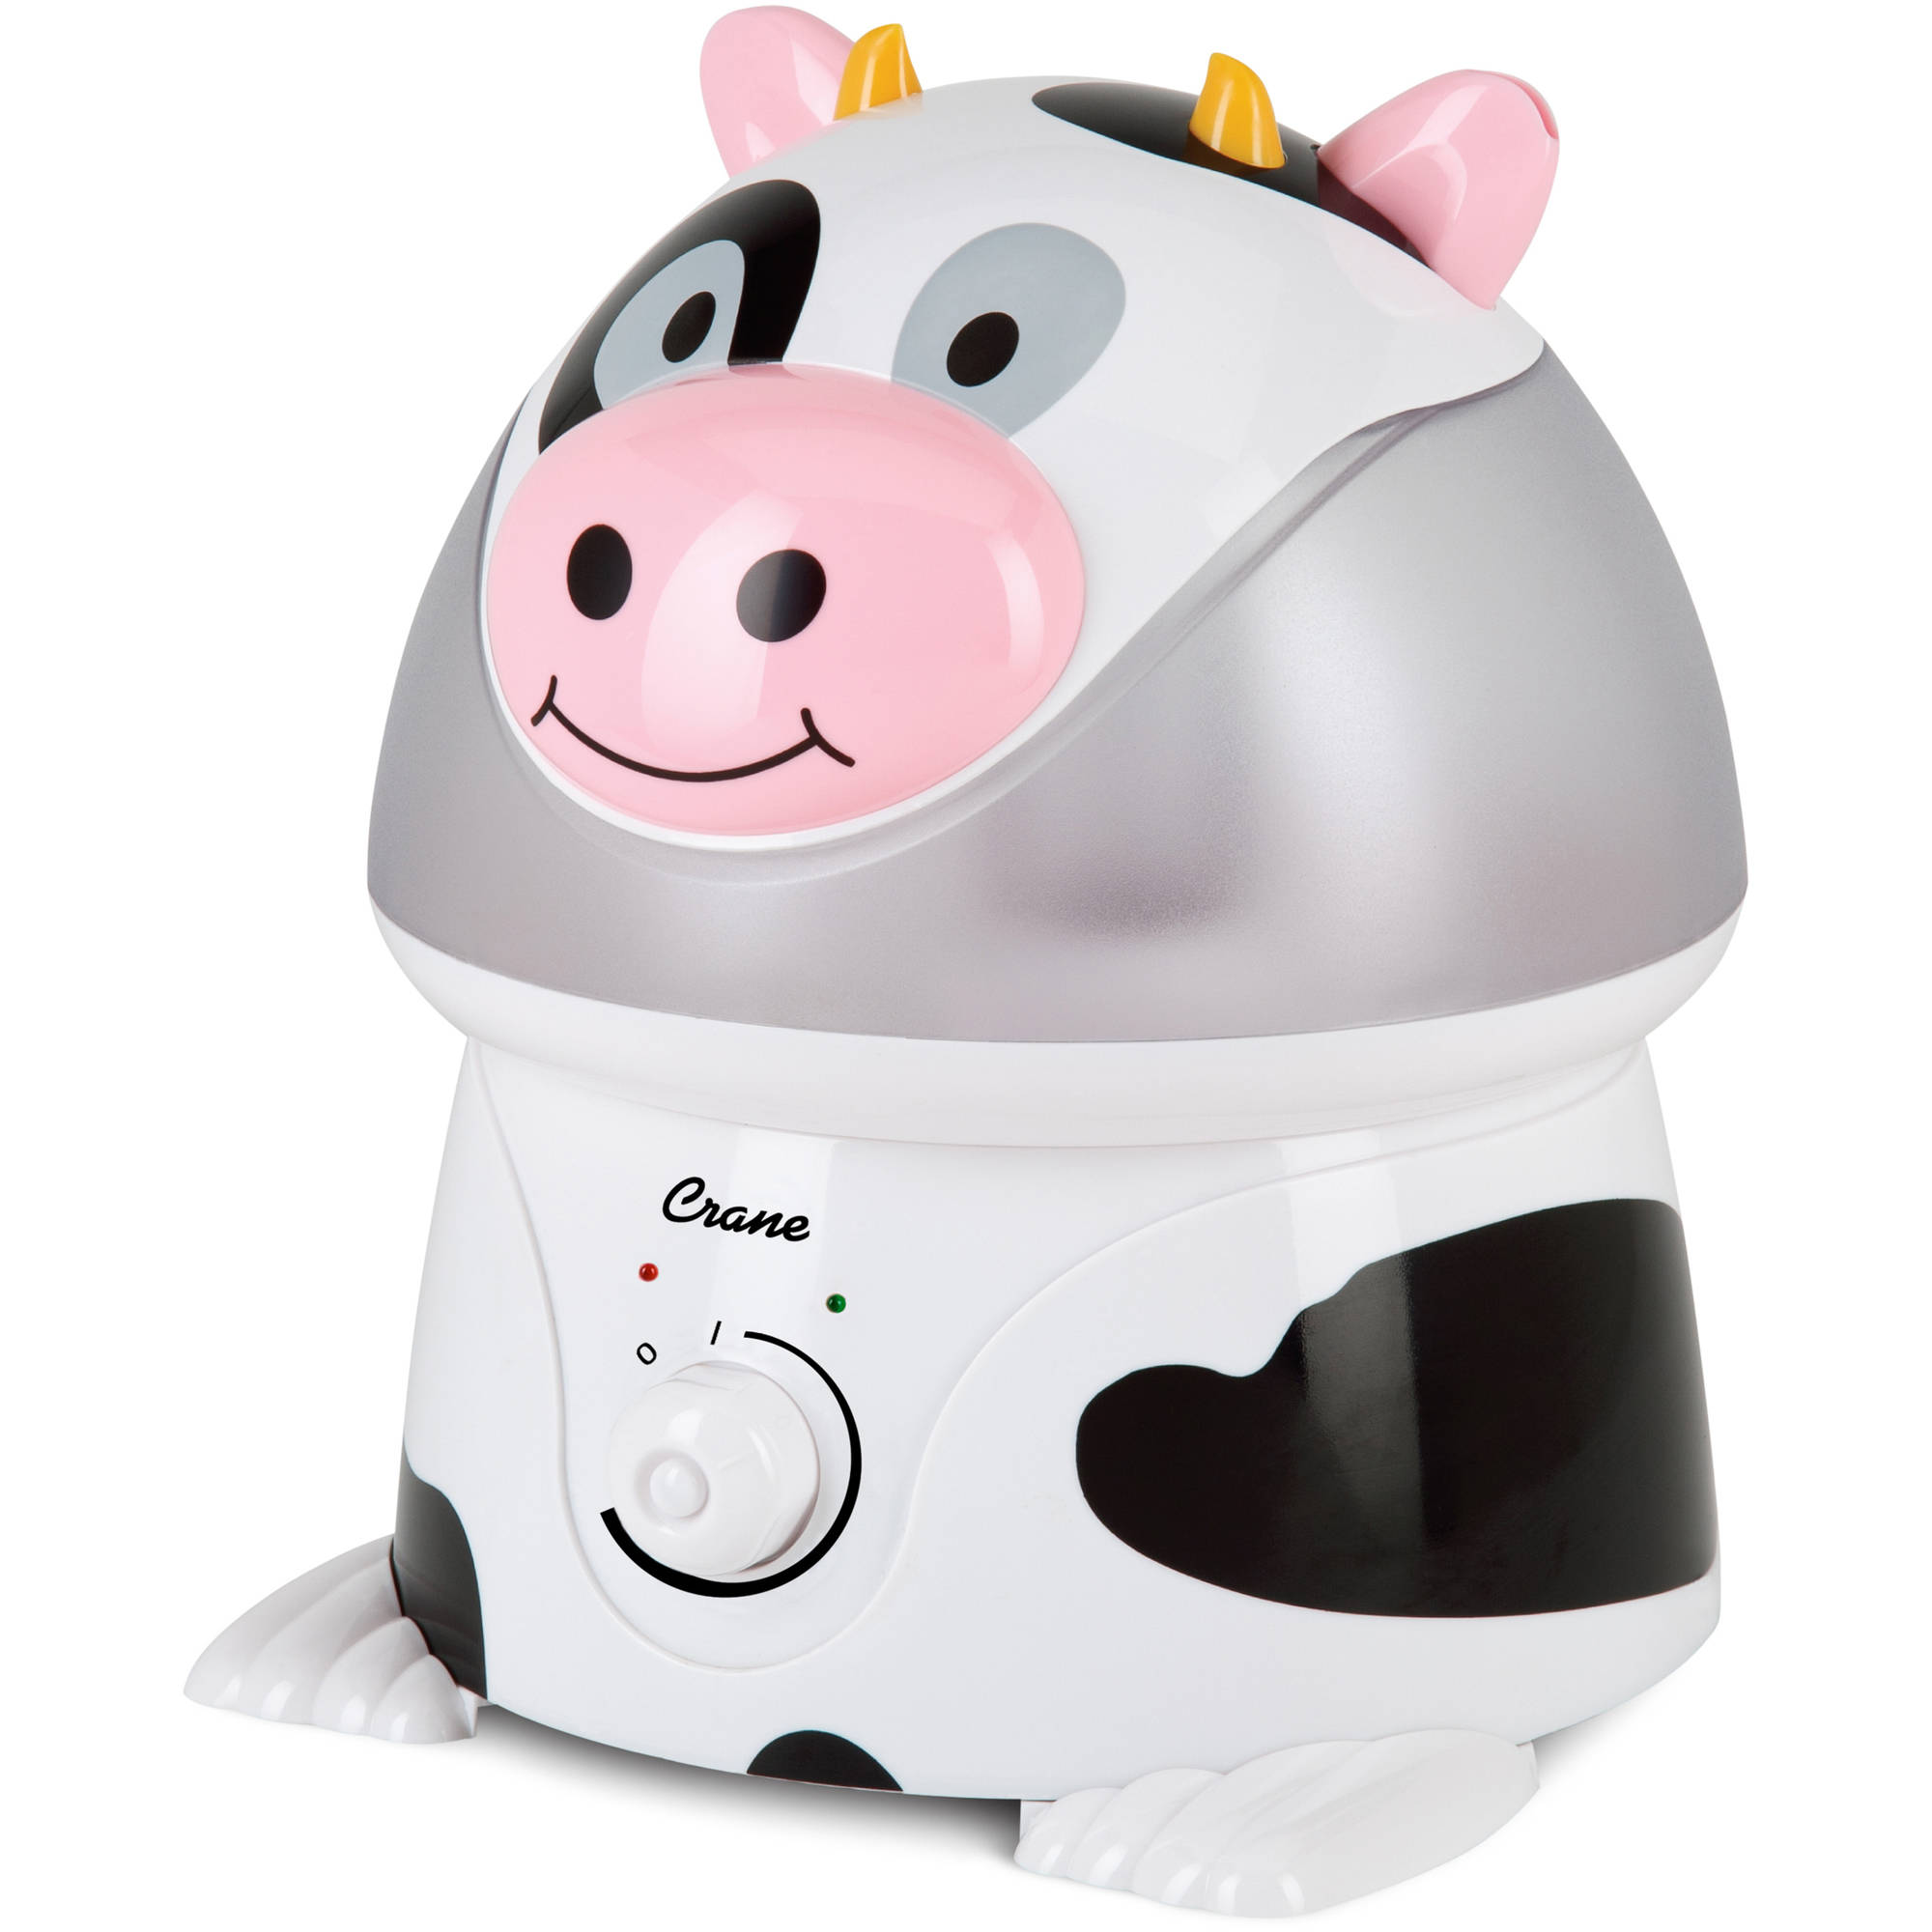 Crane Adorable Ultrasonic Cool Mist Humidifier - Cow